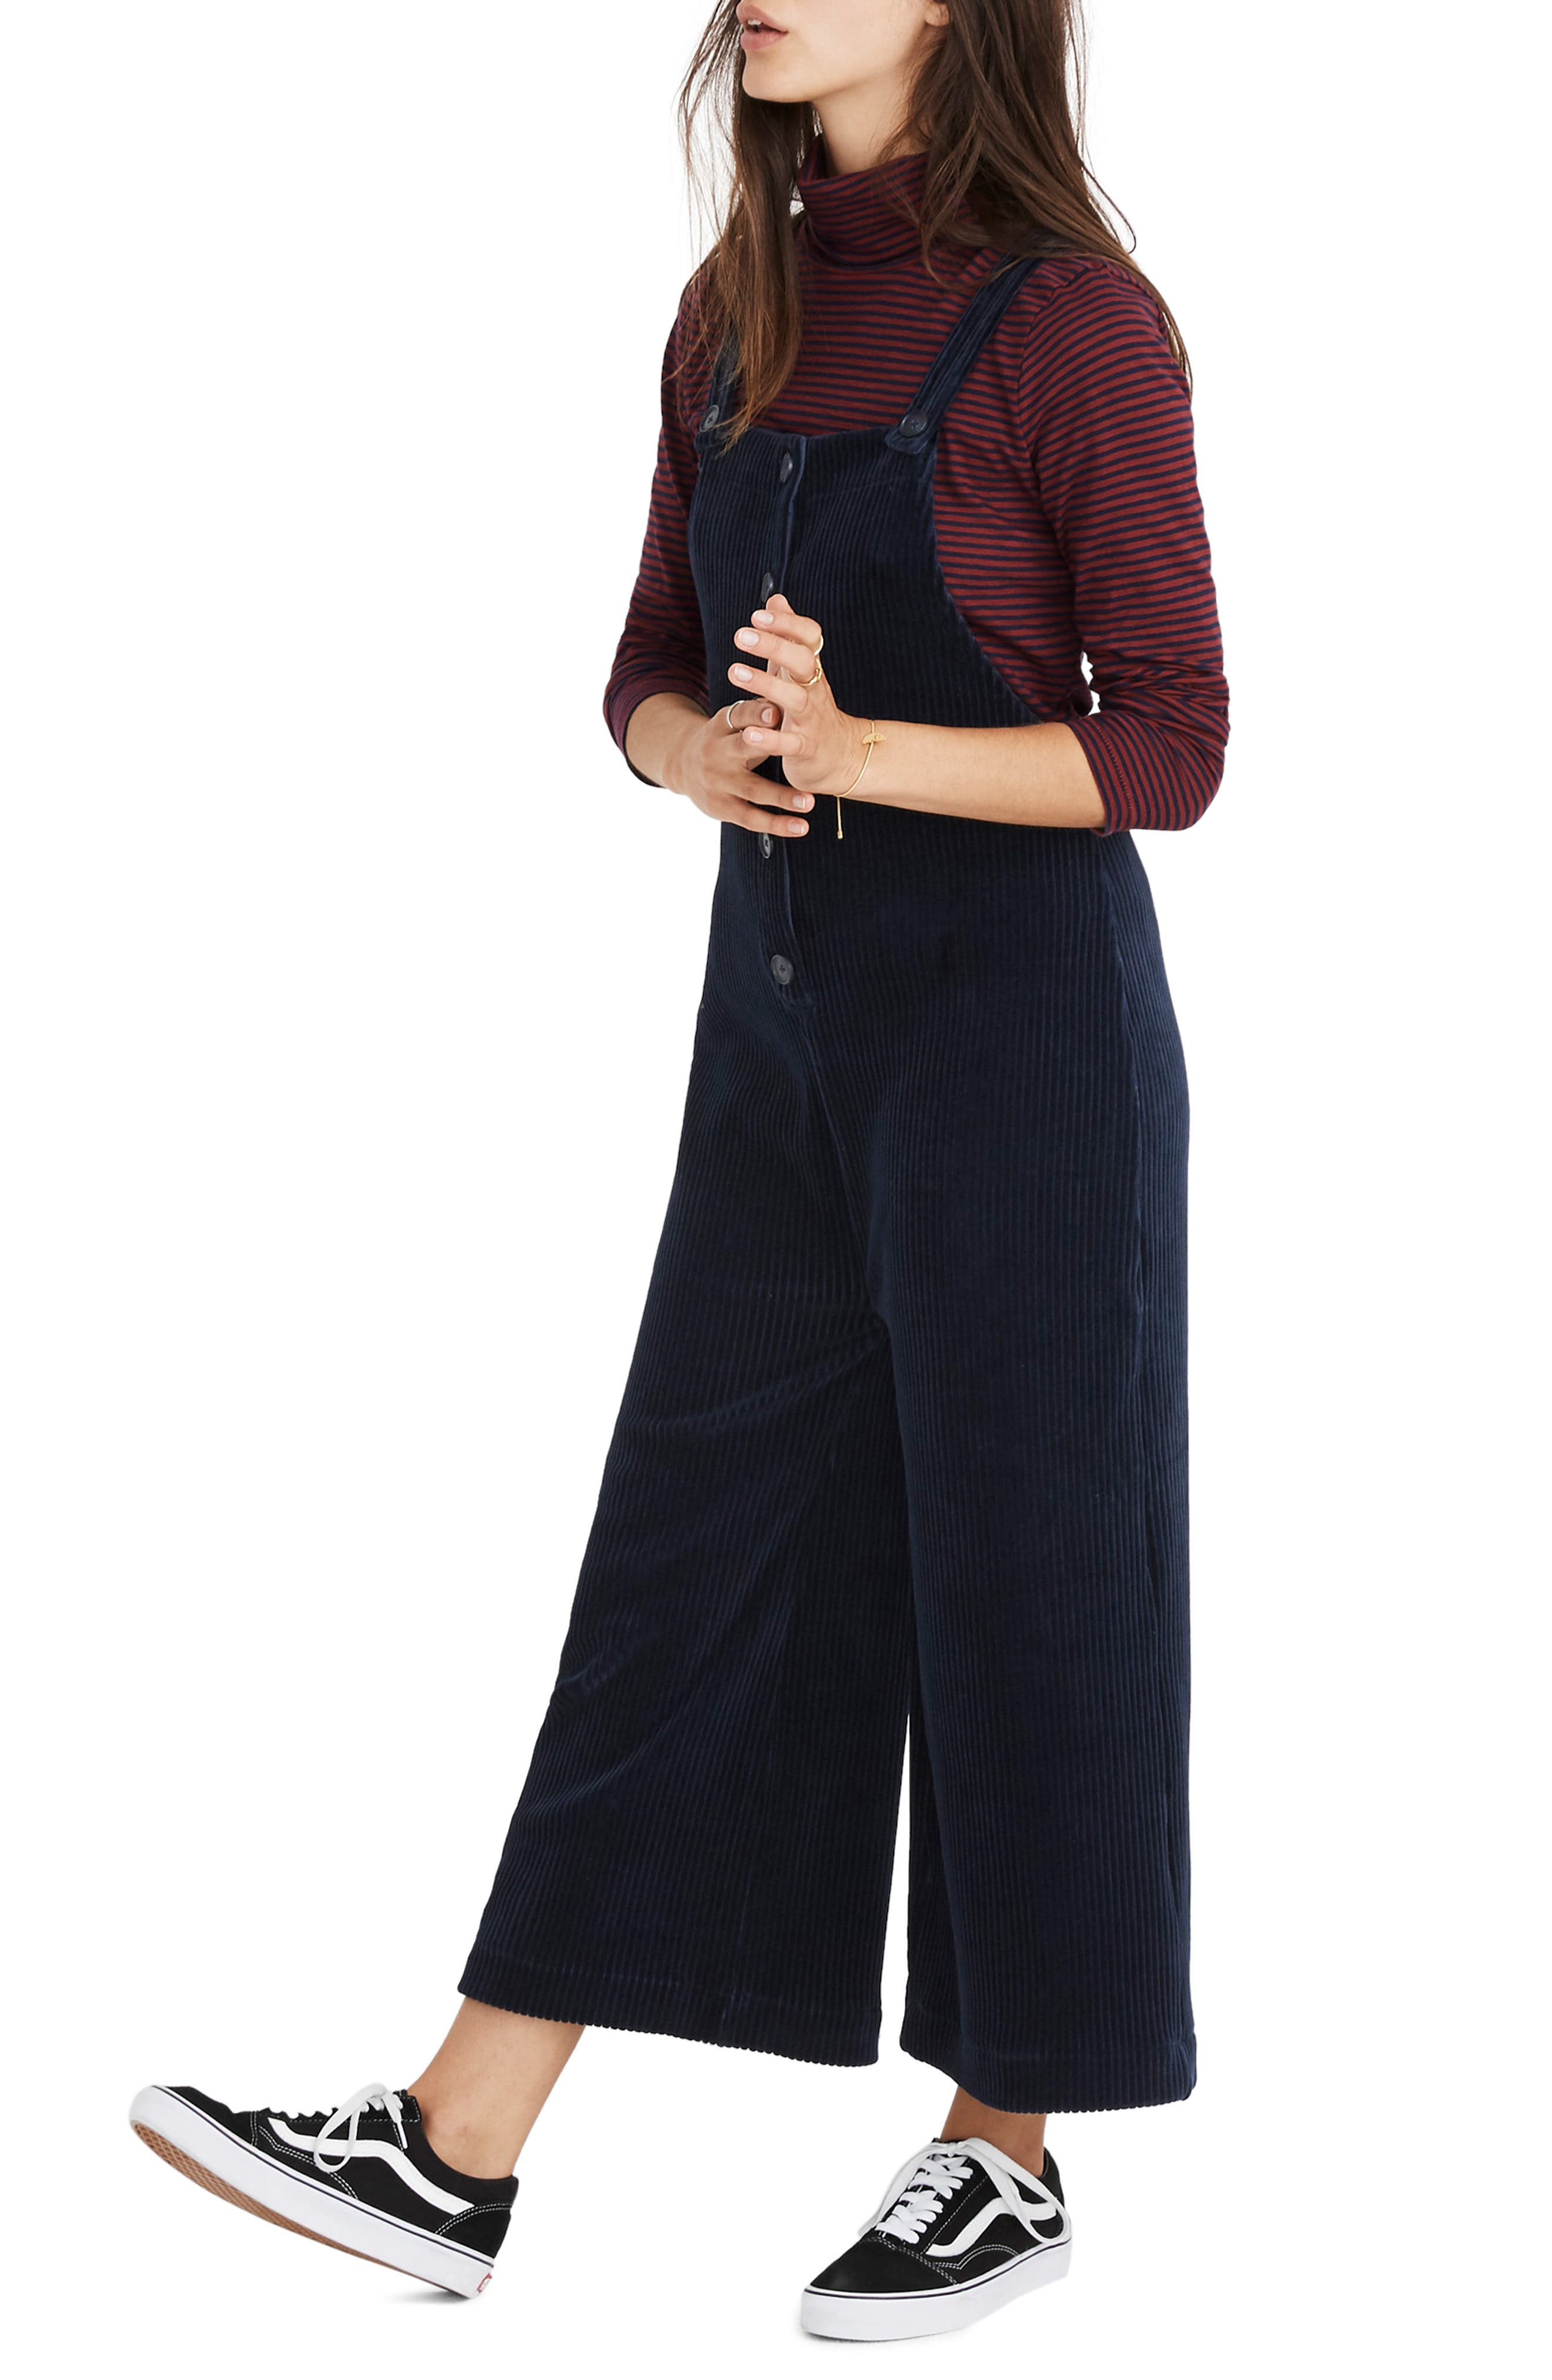 MADEWELL,                             Texture & Thread Velour Corduroy Overalls,                             Alternate thumbnail 4, color,                             400